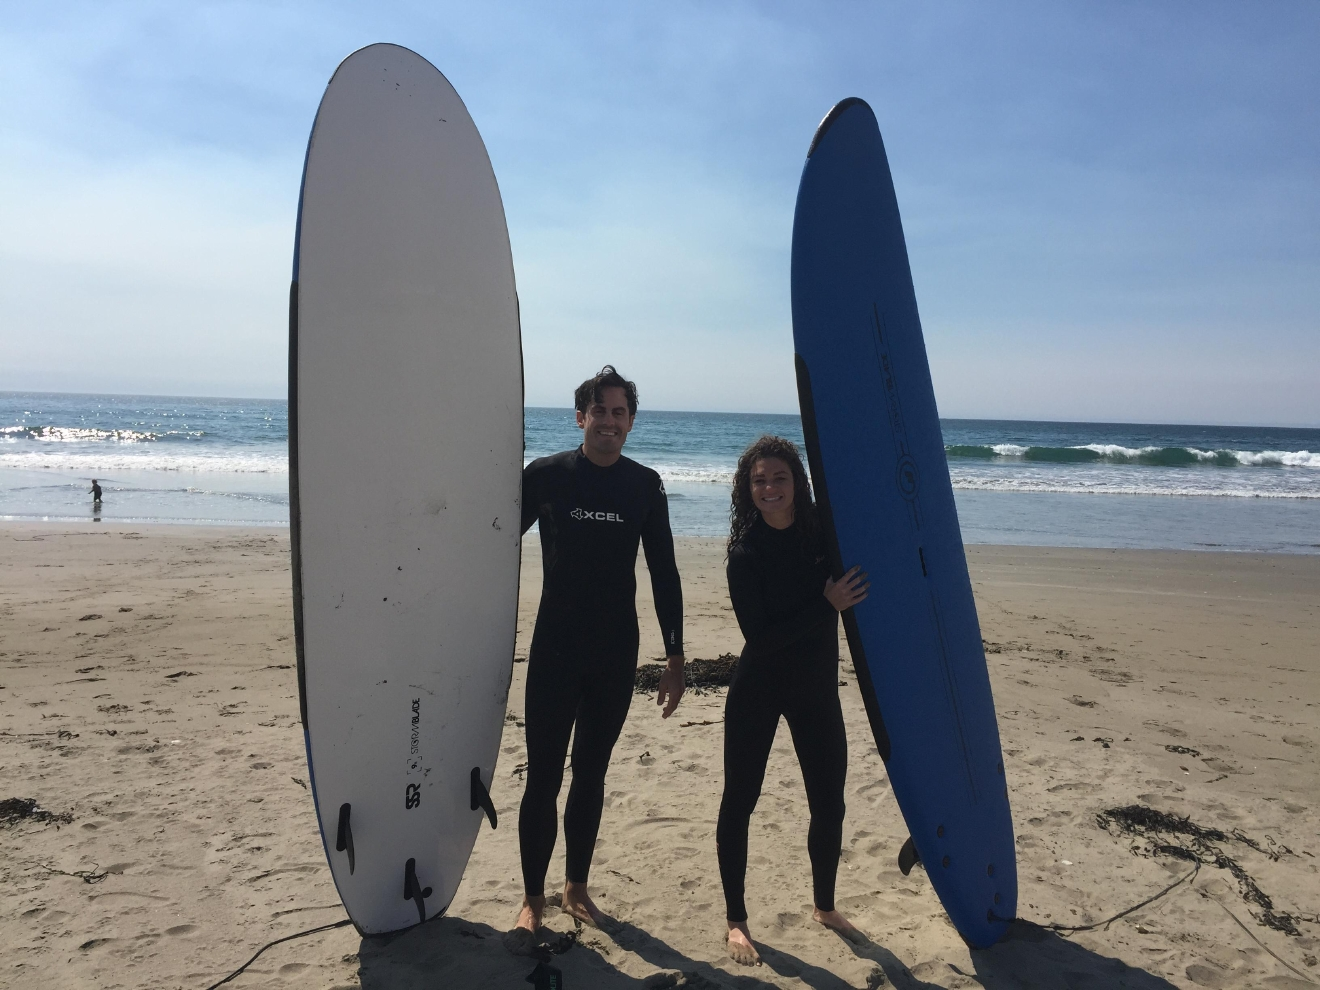 Just finished a surfing lesson with Good Clean Fun Surf & Sport in Cayucos.